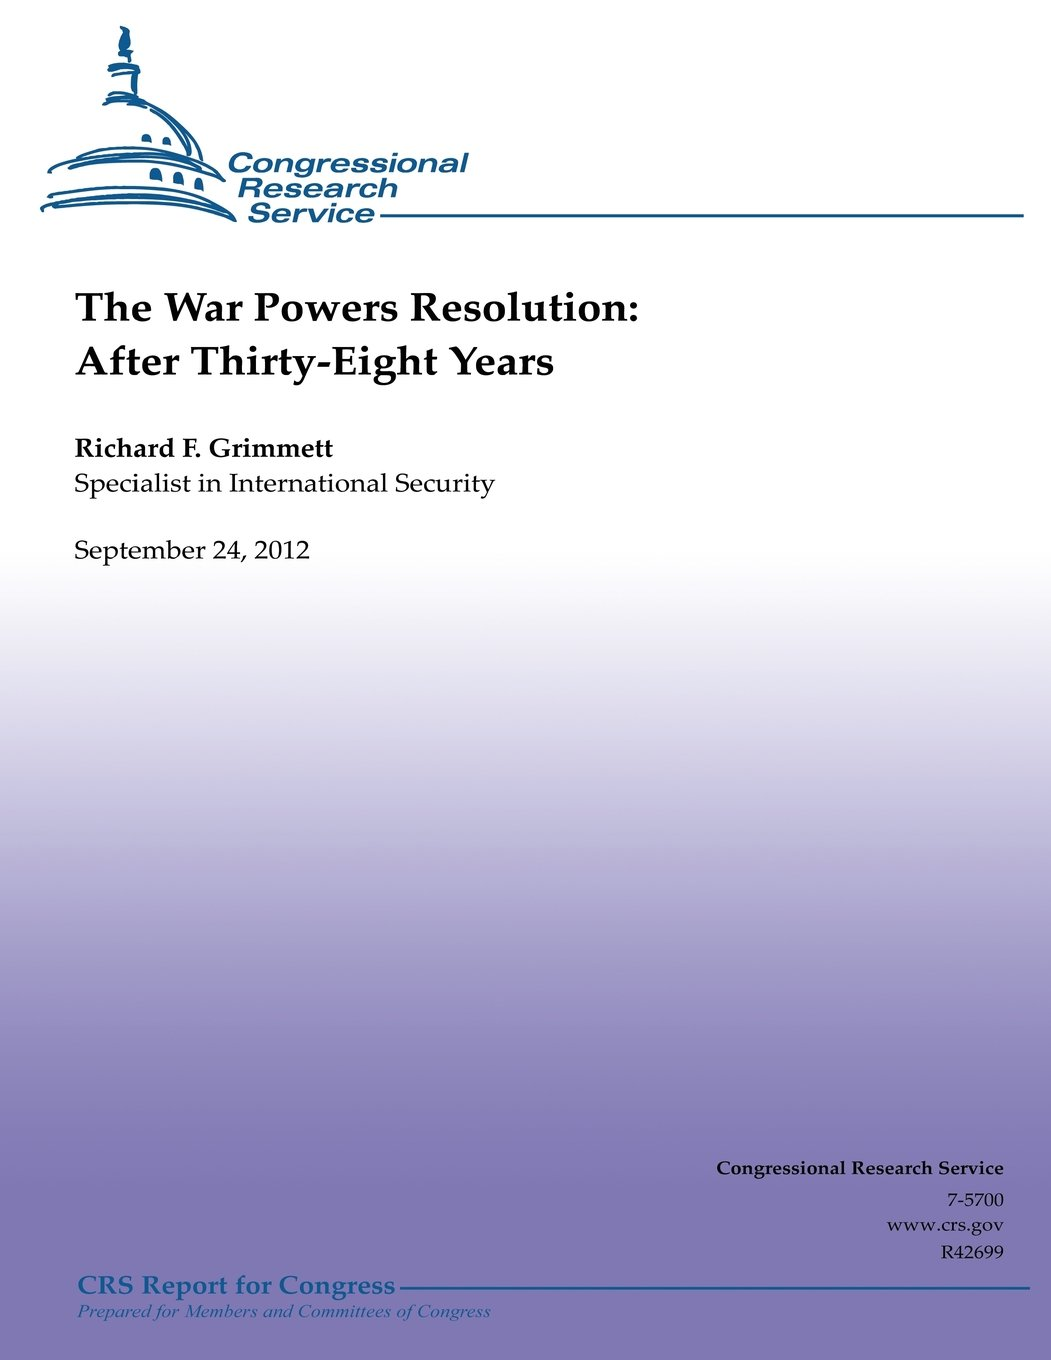 The War Powers Resolution:  After Thirty-Eight Years ebook